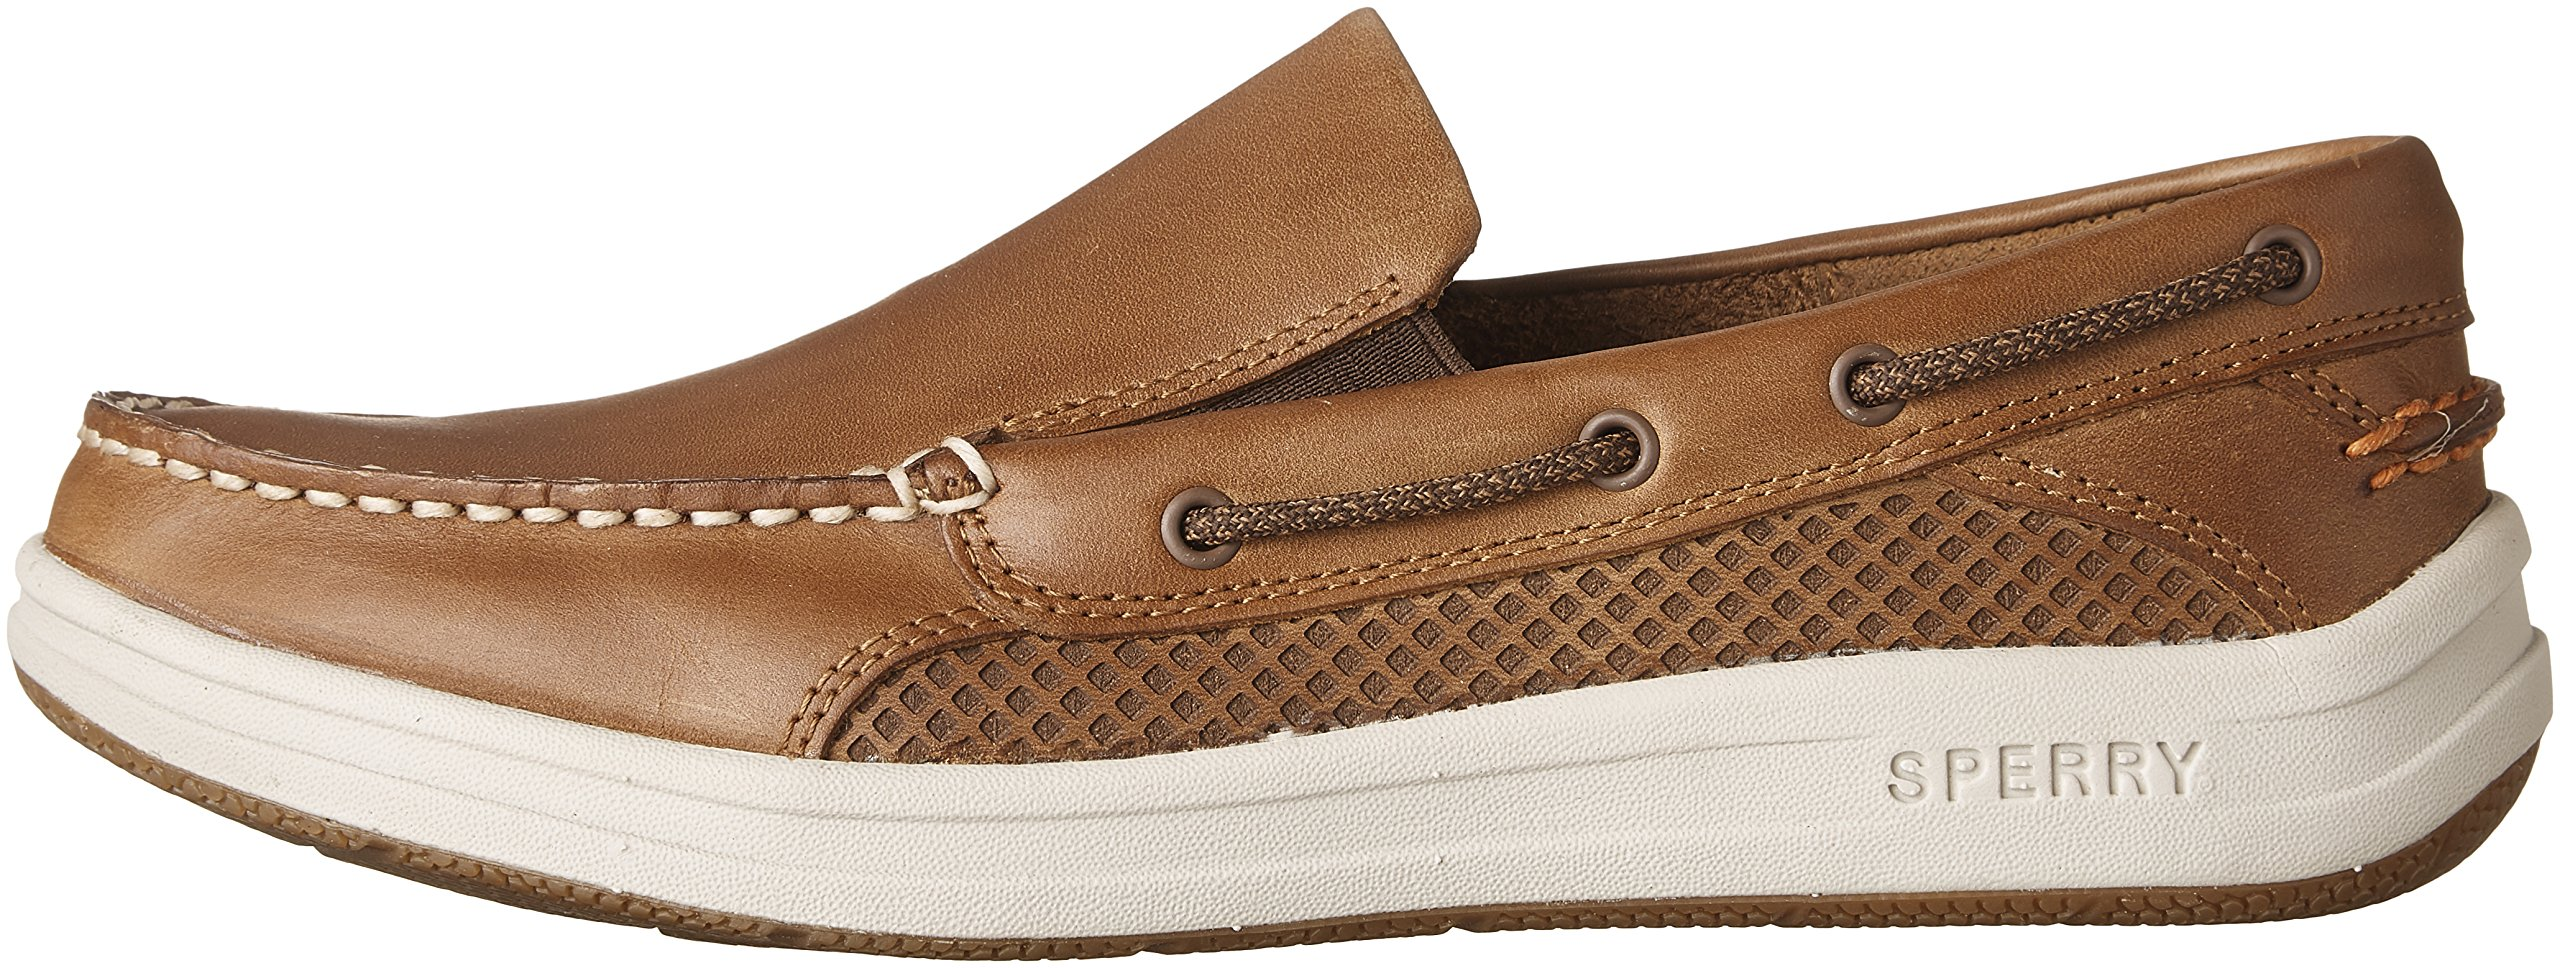 Sperry Top-Sider Men's Gamefish Slip On Boat Shoe, Dark Tan, 10.5 M US by Sperry Top-Sider (Image #5)